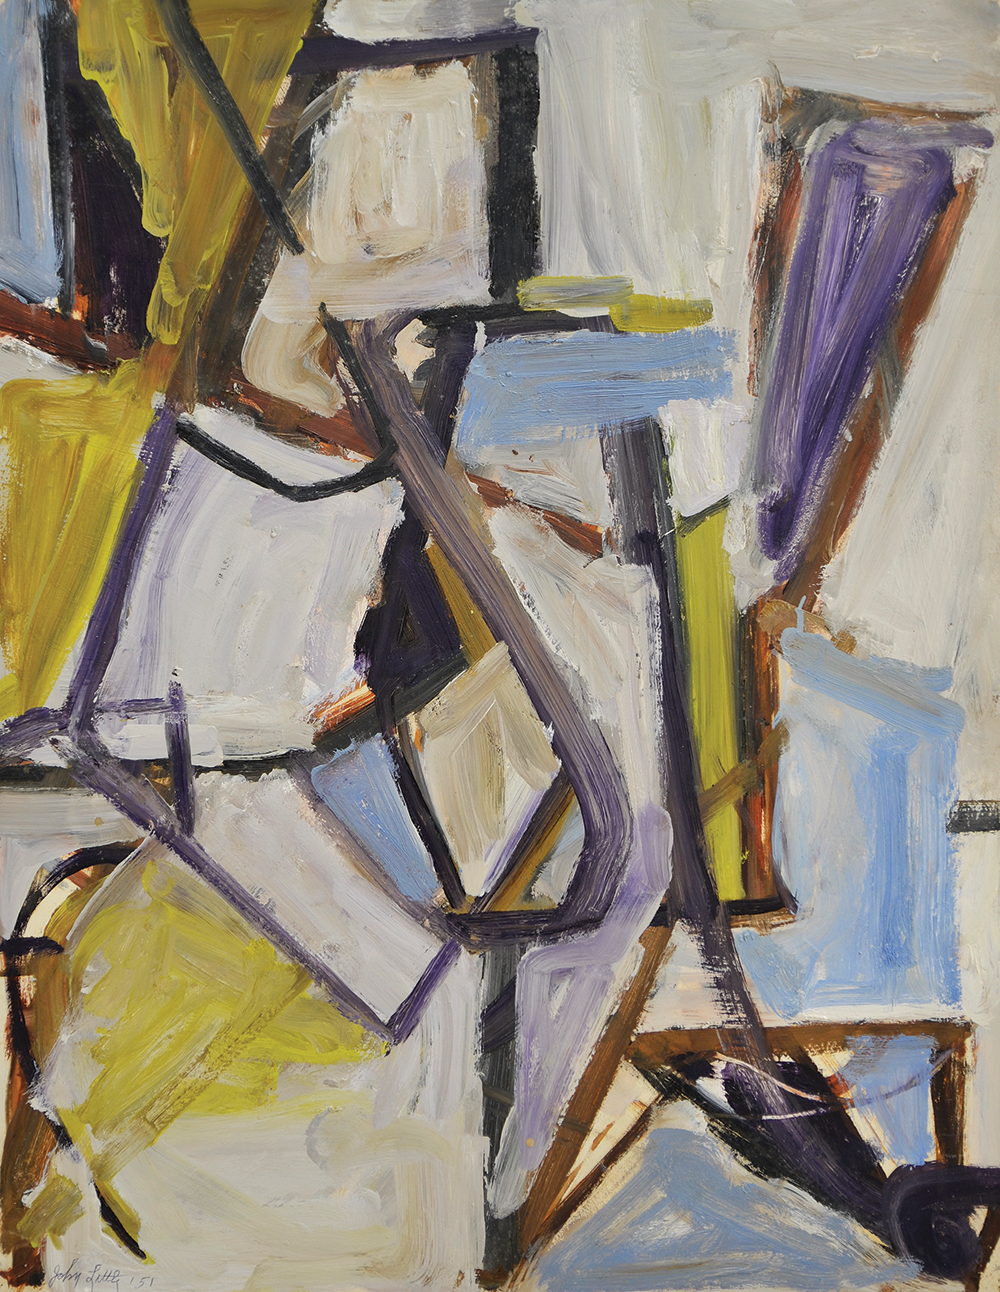 Untitled,   Oil on paper, 1951, 22 3/4 x 29 inches